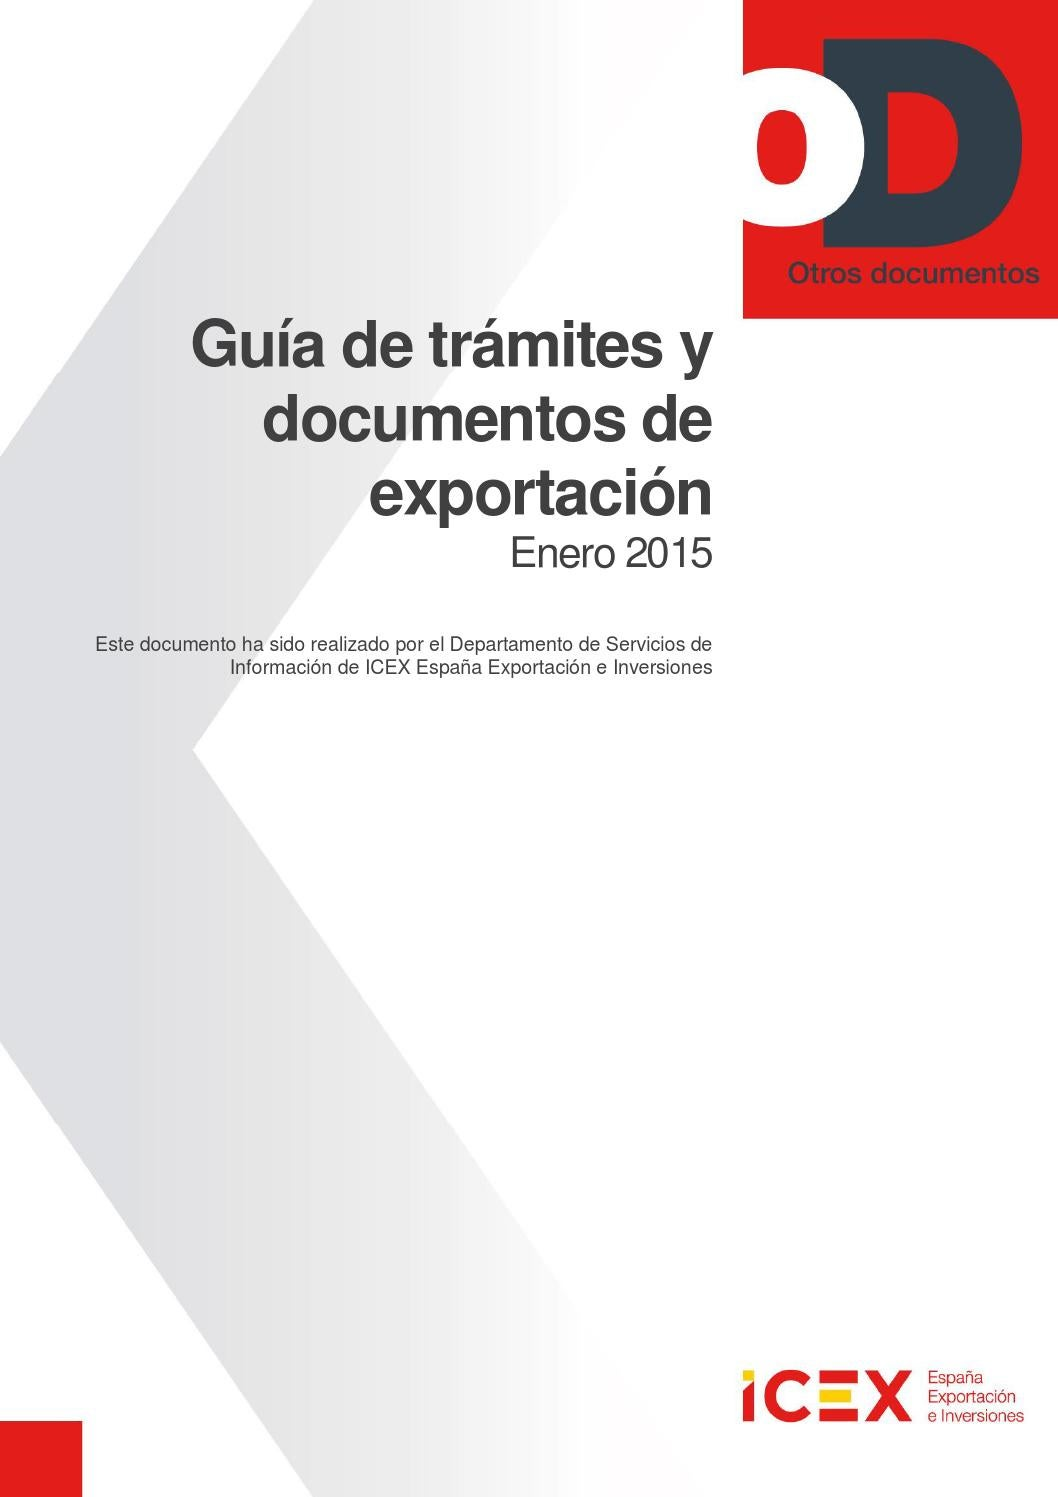 Guia tramites documentos export 2015 by Pedro Rodríguez Sánchez - issuu